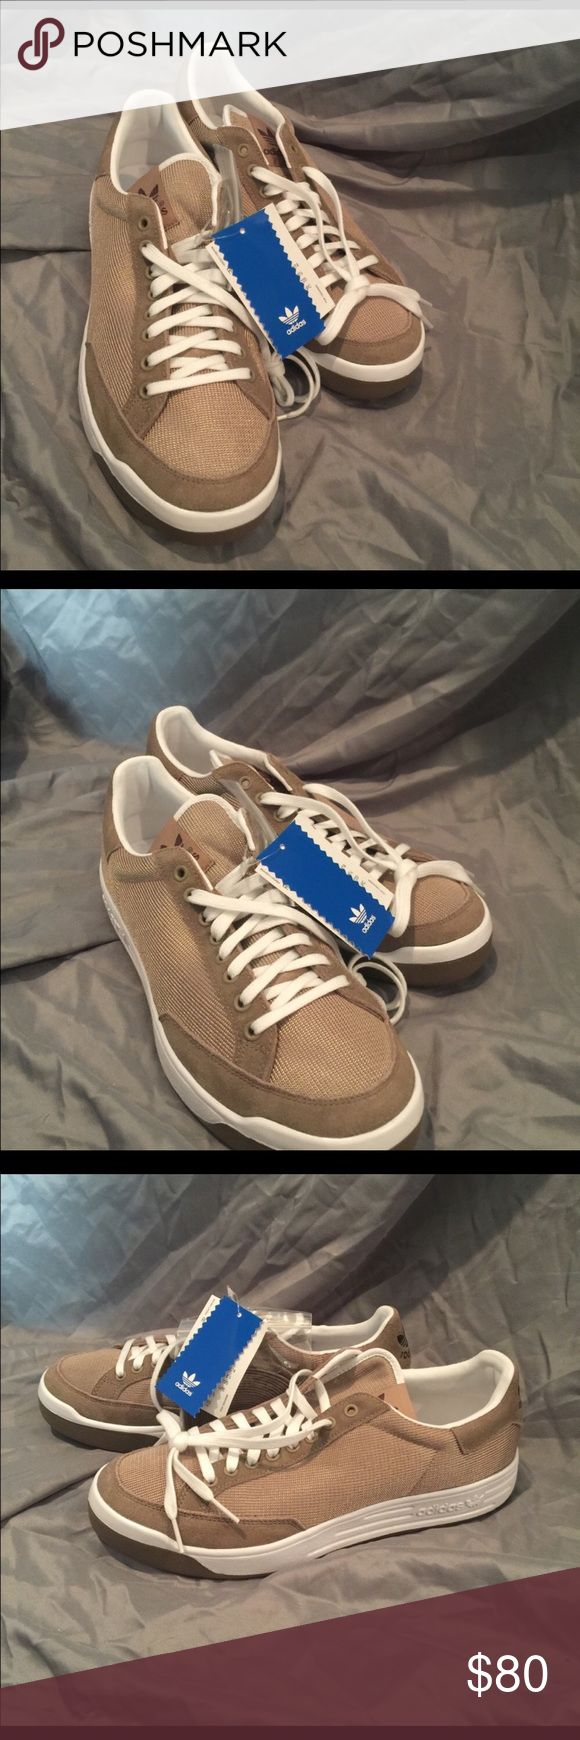 Adidas Rod Laver in Sand/Khaki These are men's shoes, size 9 which is women's 10.5. Brand new with tags. Iconic! adidas Shoes Sneakers